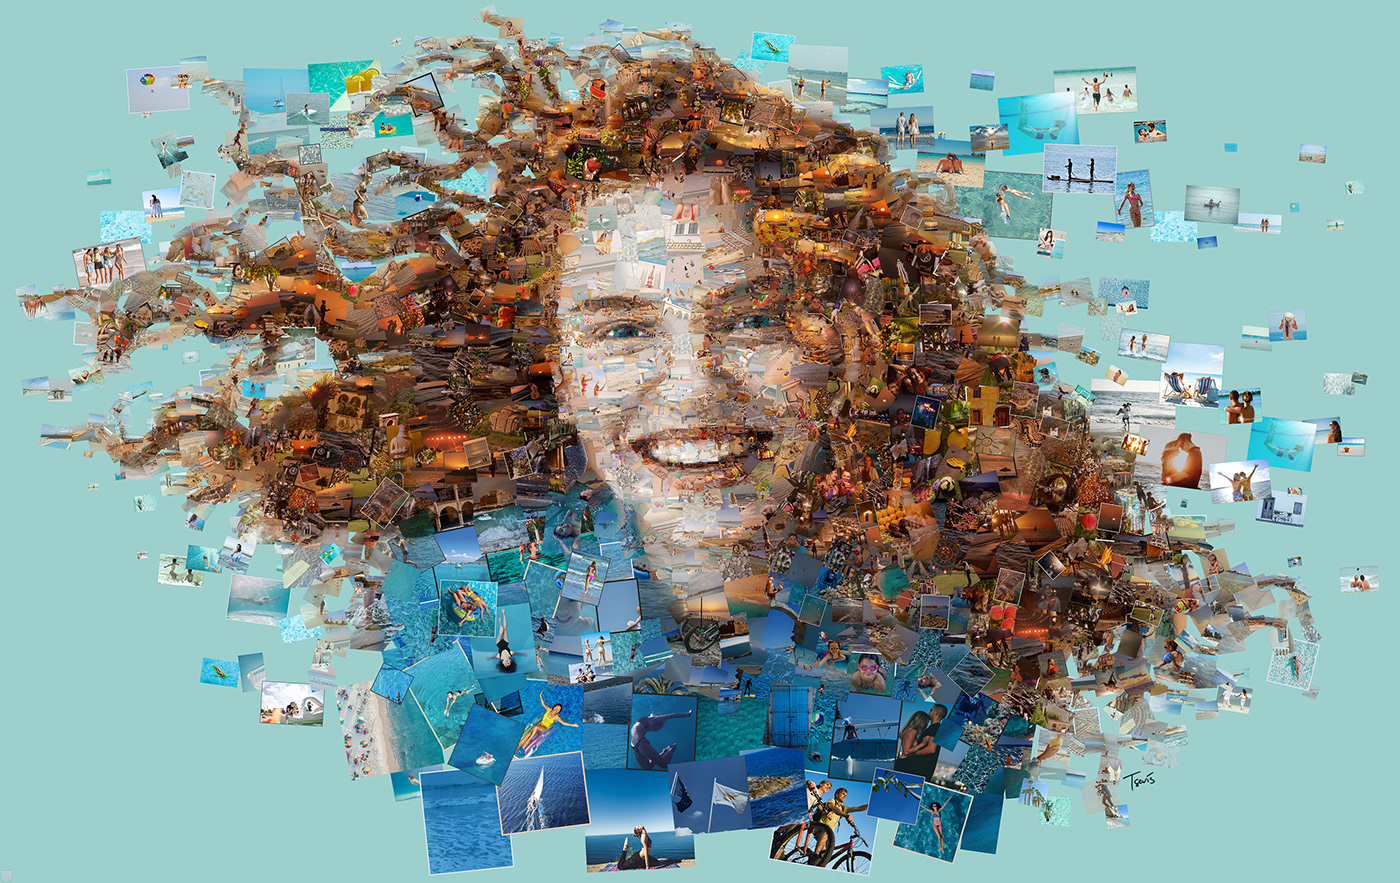 Cyprus Airways - Every smile has its moment / работы Charis Tsevis